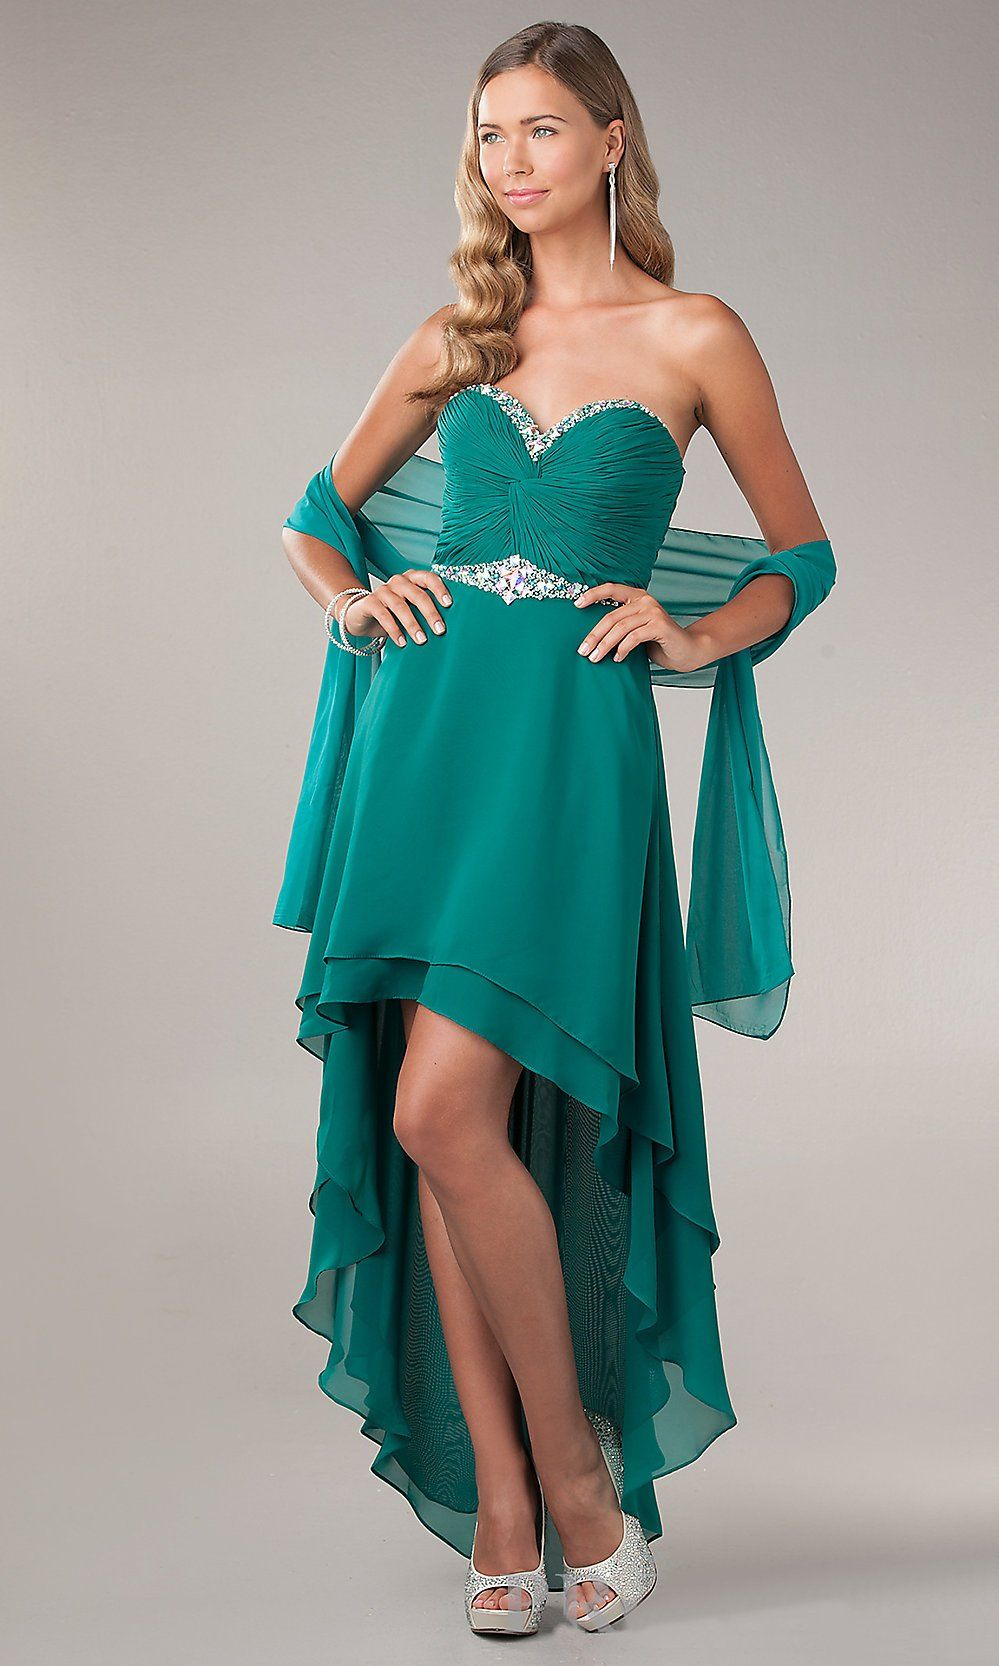 High Low Prom Dress Emerald Green Chiffon Sweetheart Neck ...